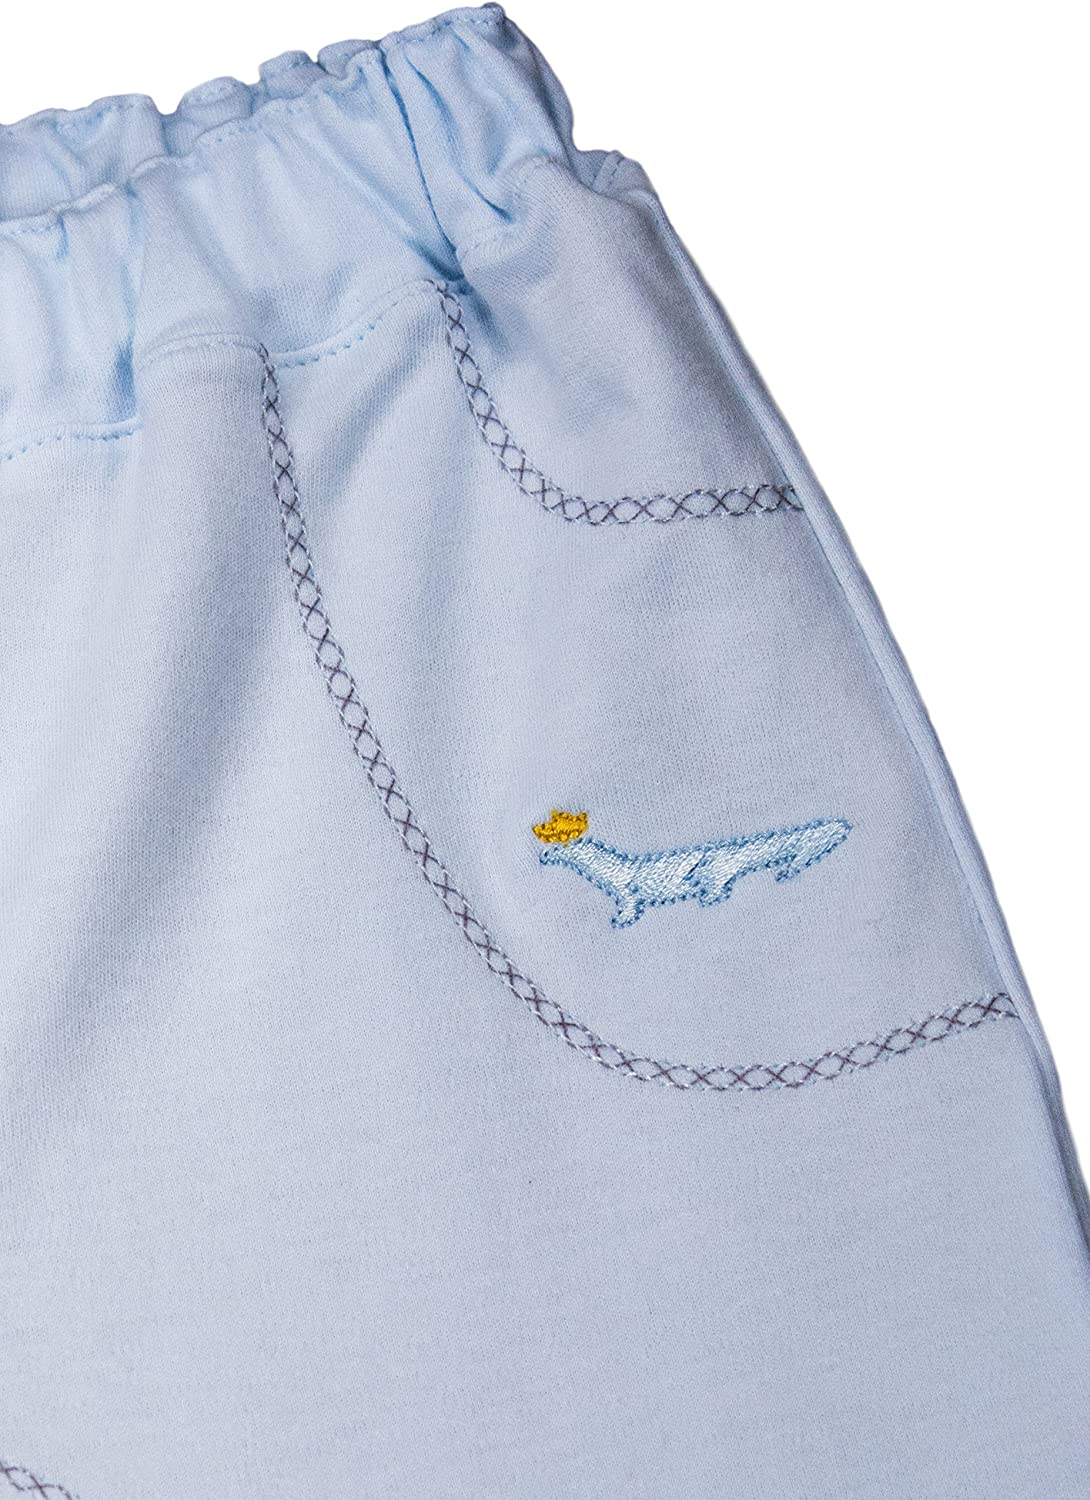 Baby Boys Pant and Top Set 100/% Pima Cotton Blue and White Outfit